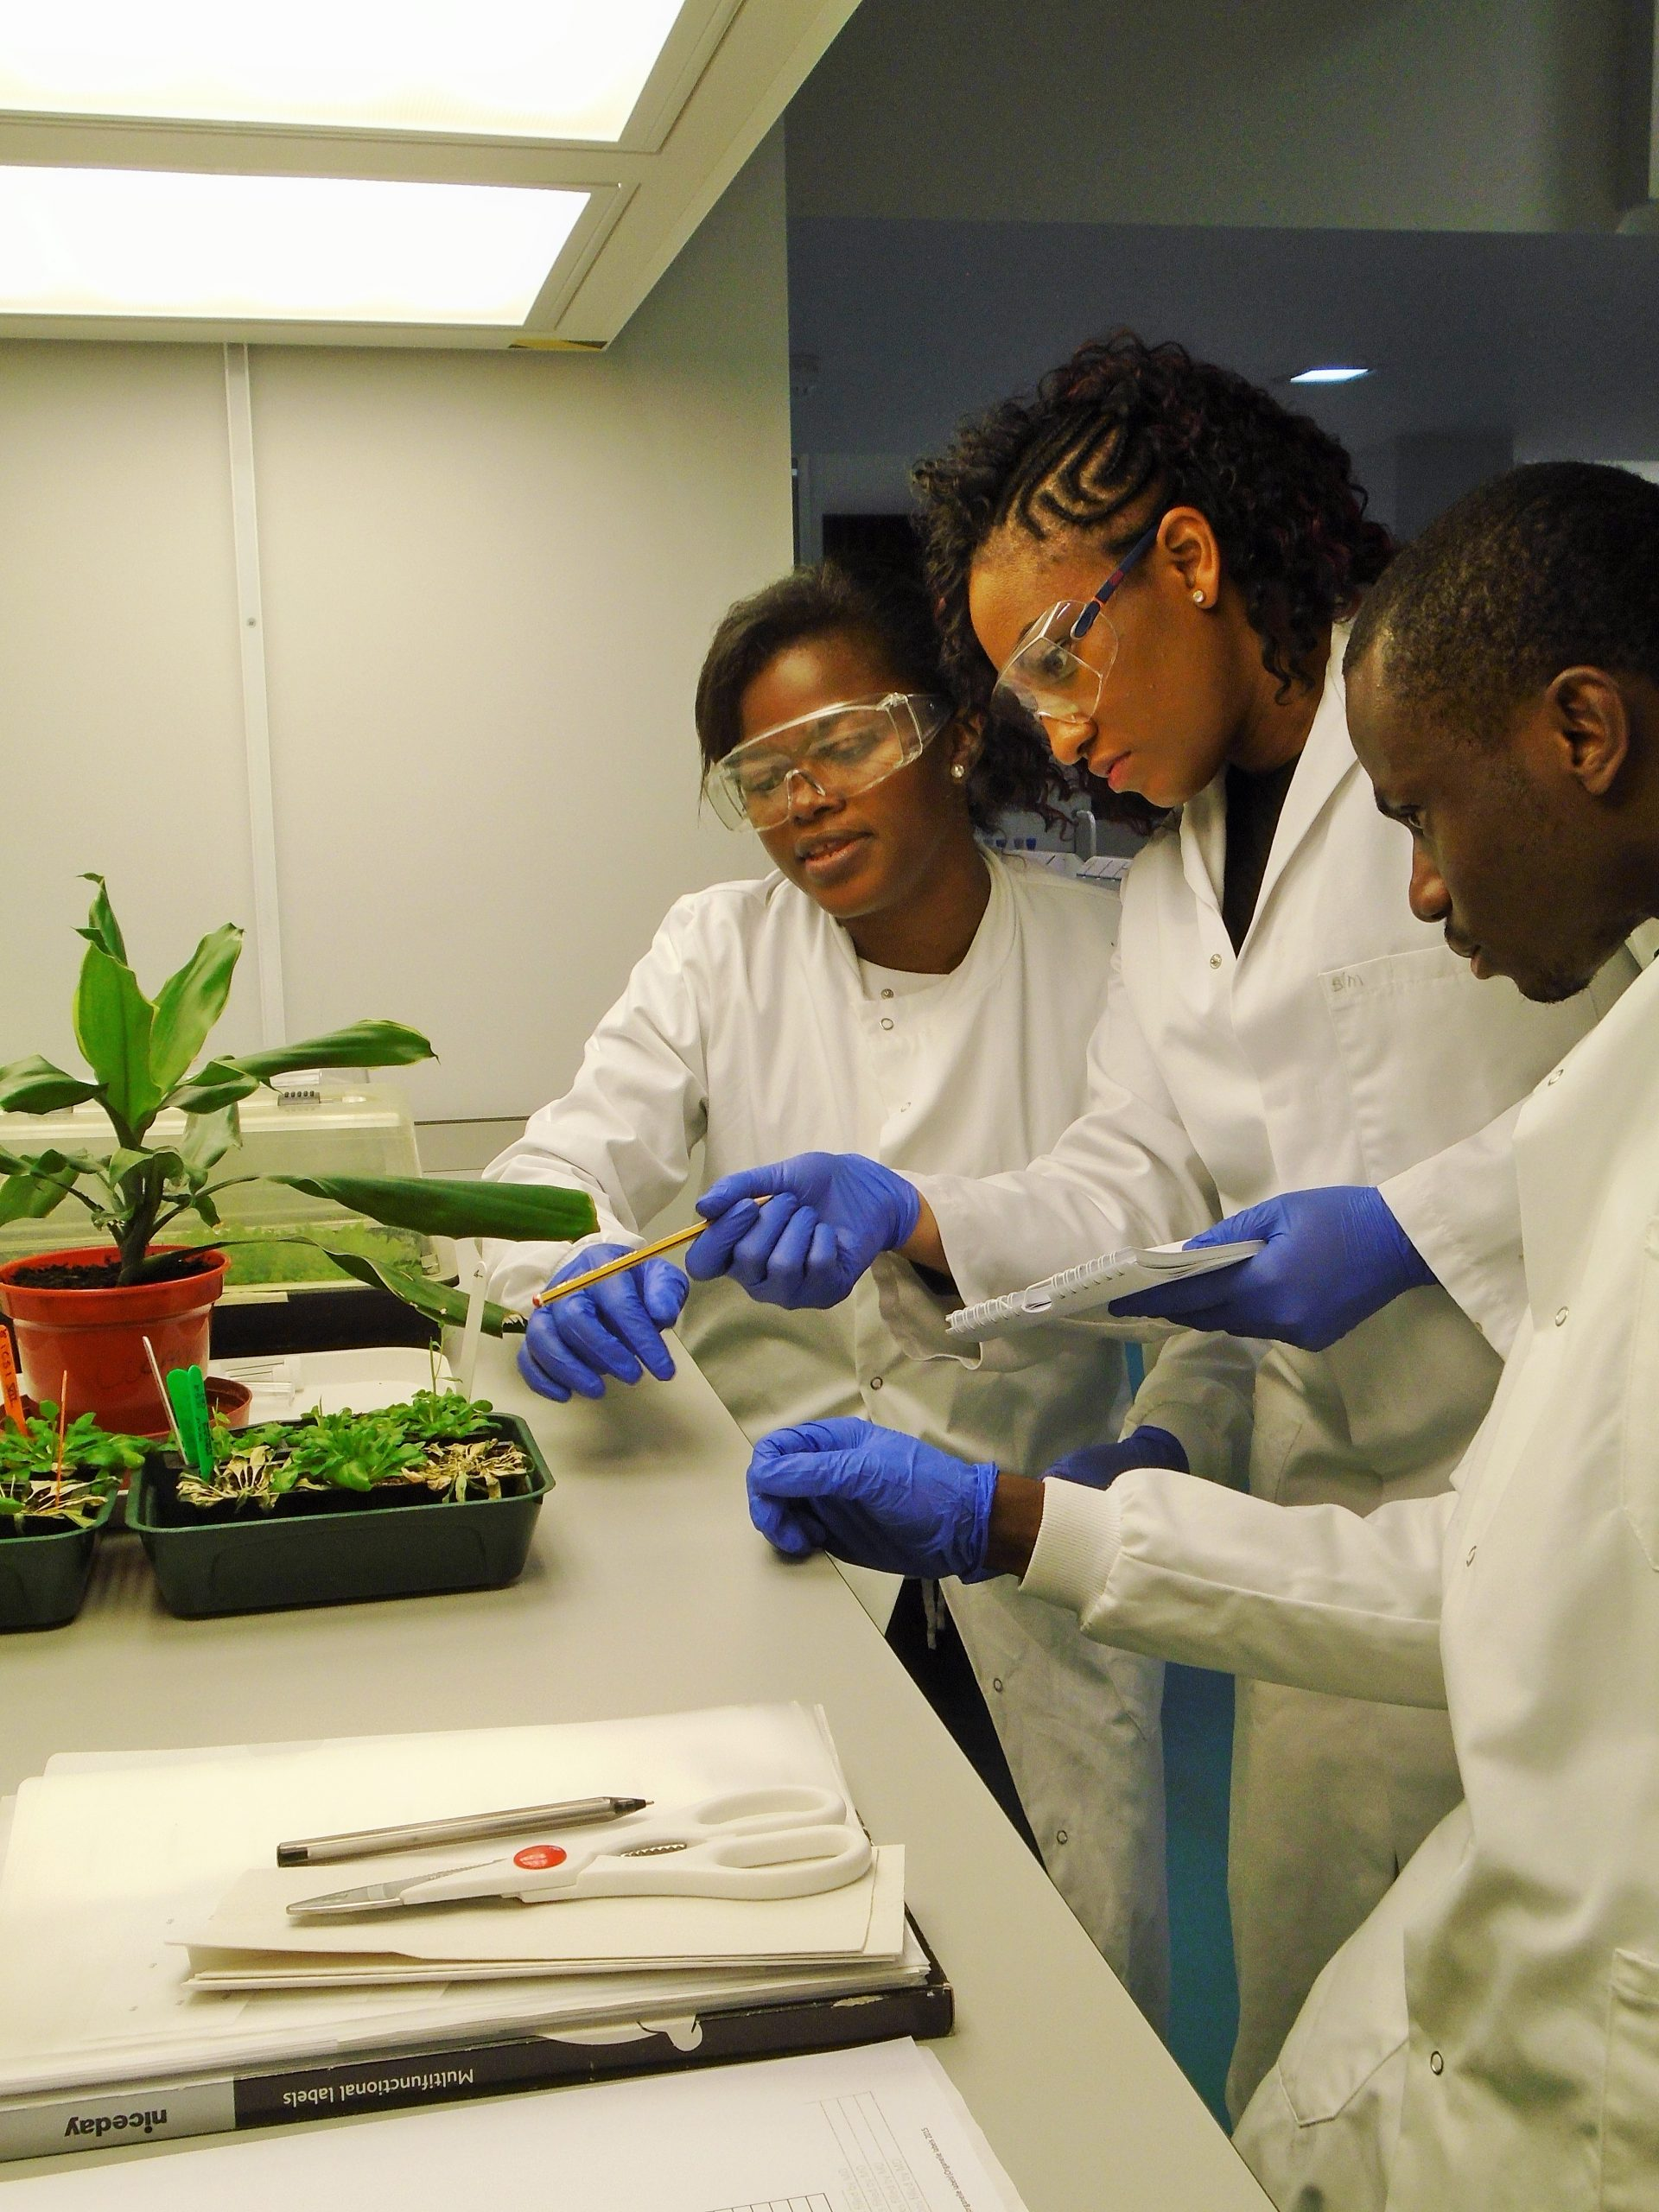 Science workshop aims to boost agriculture research in Africa